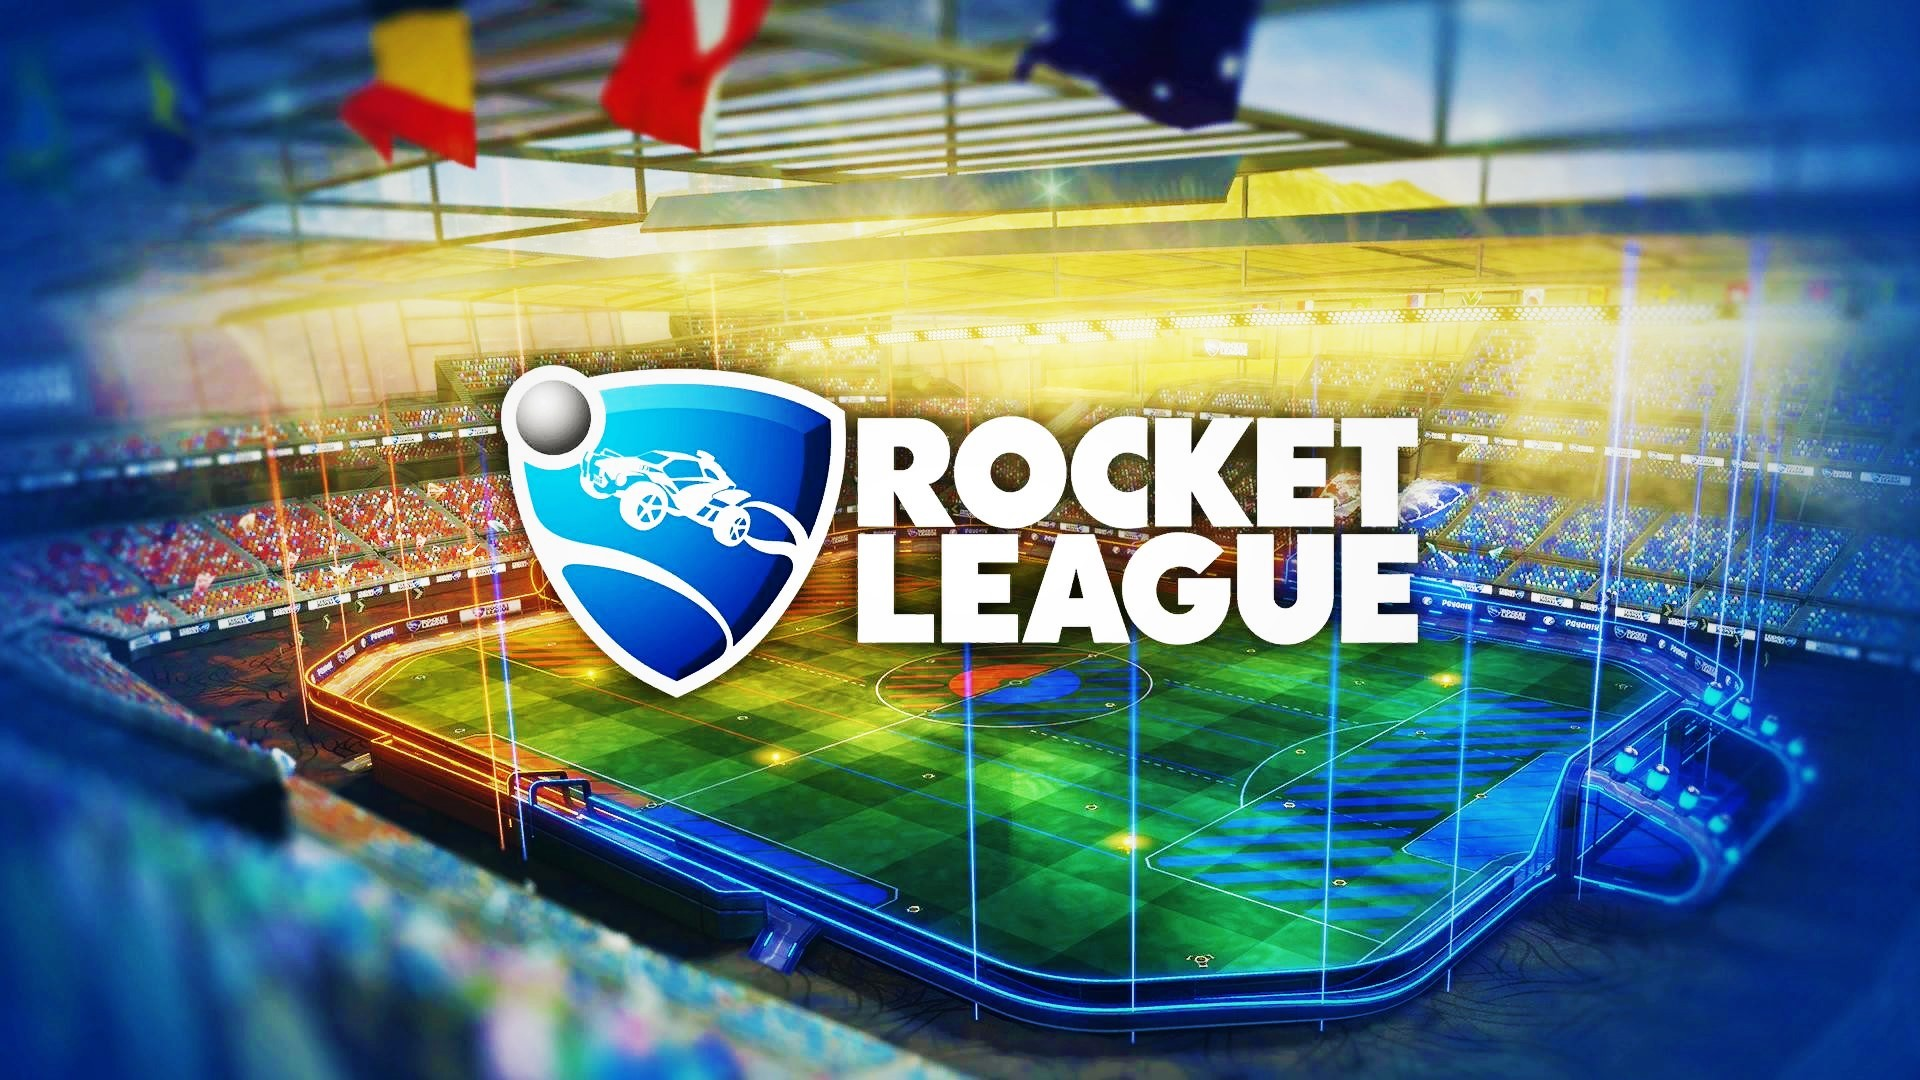 General-1920x1080-rocket-rocketleague-car-racing-simulators-Drive-video-games-stadium-blue-green-Goa-wallpaper-wp3406194